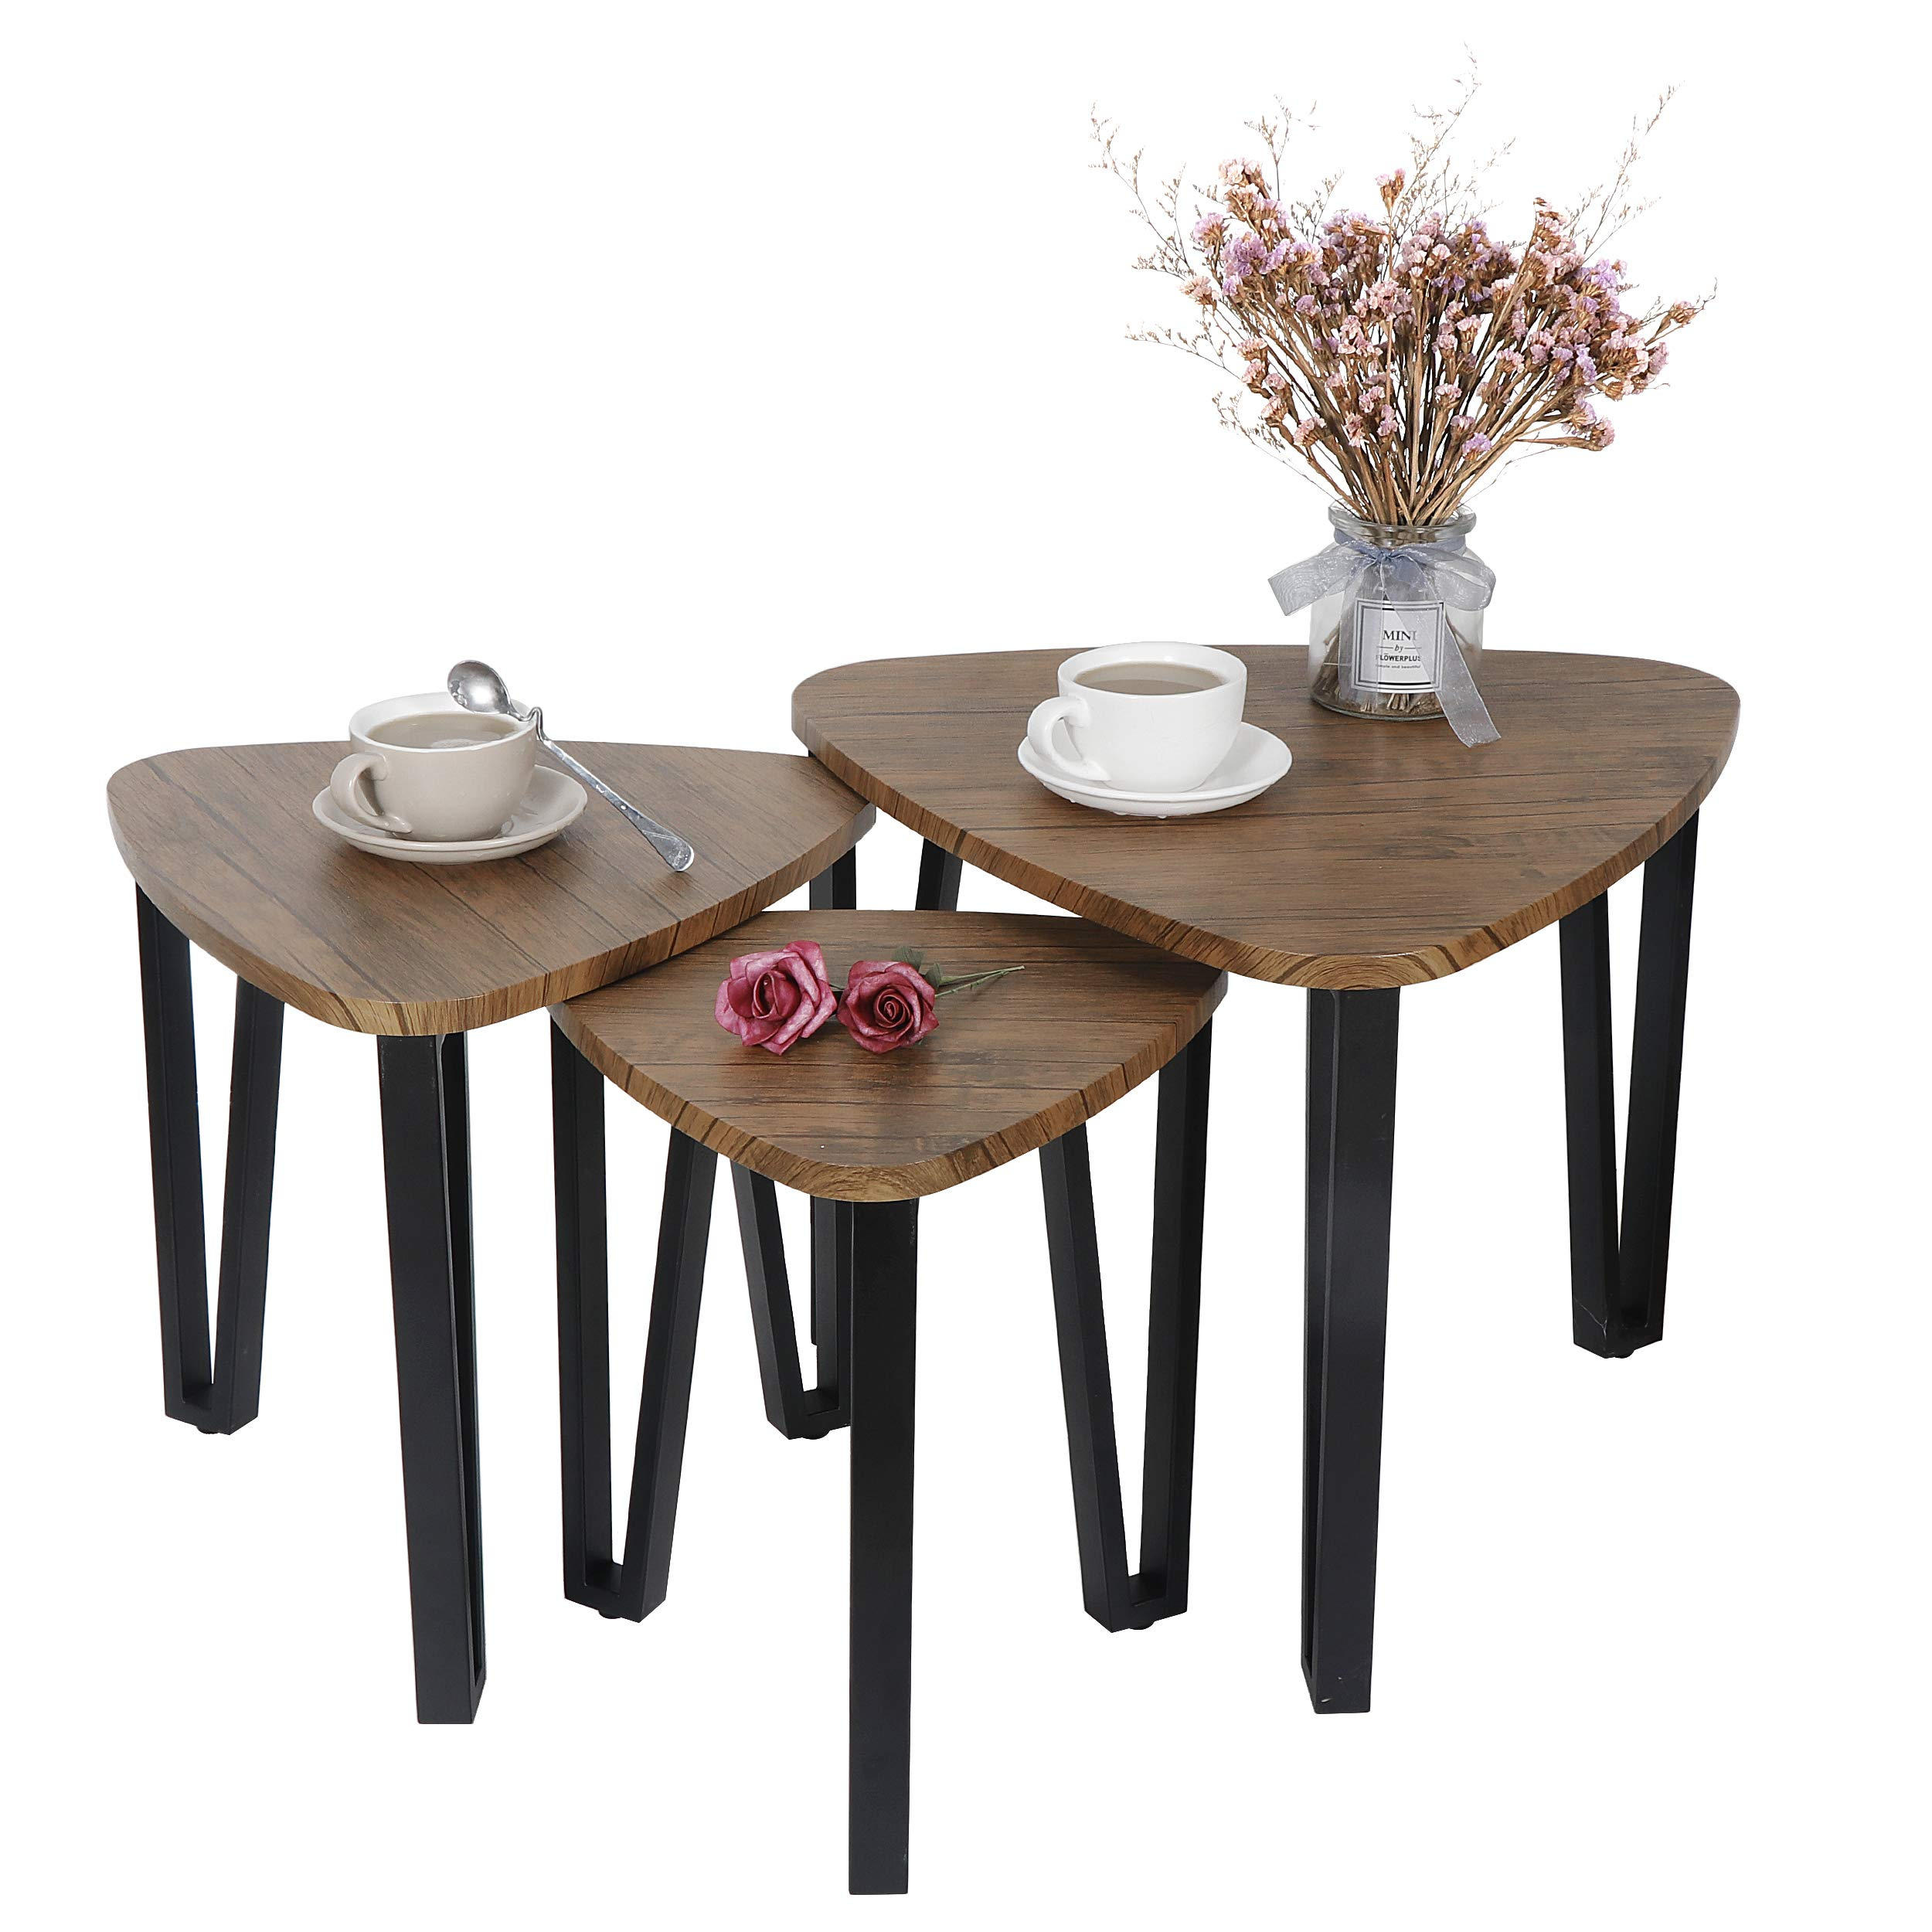 SUPER DEAL Nesting Coffee Table Living Room Coffee Table Set of 3Stacking End Side Tables Nightstand Coffee Snack Table for Home and Office by SUPER DEAL